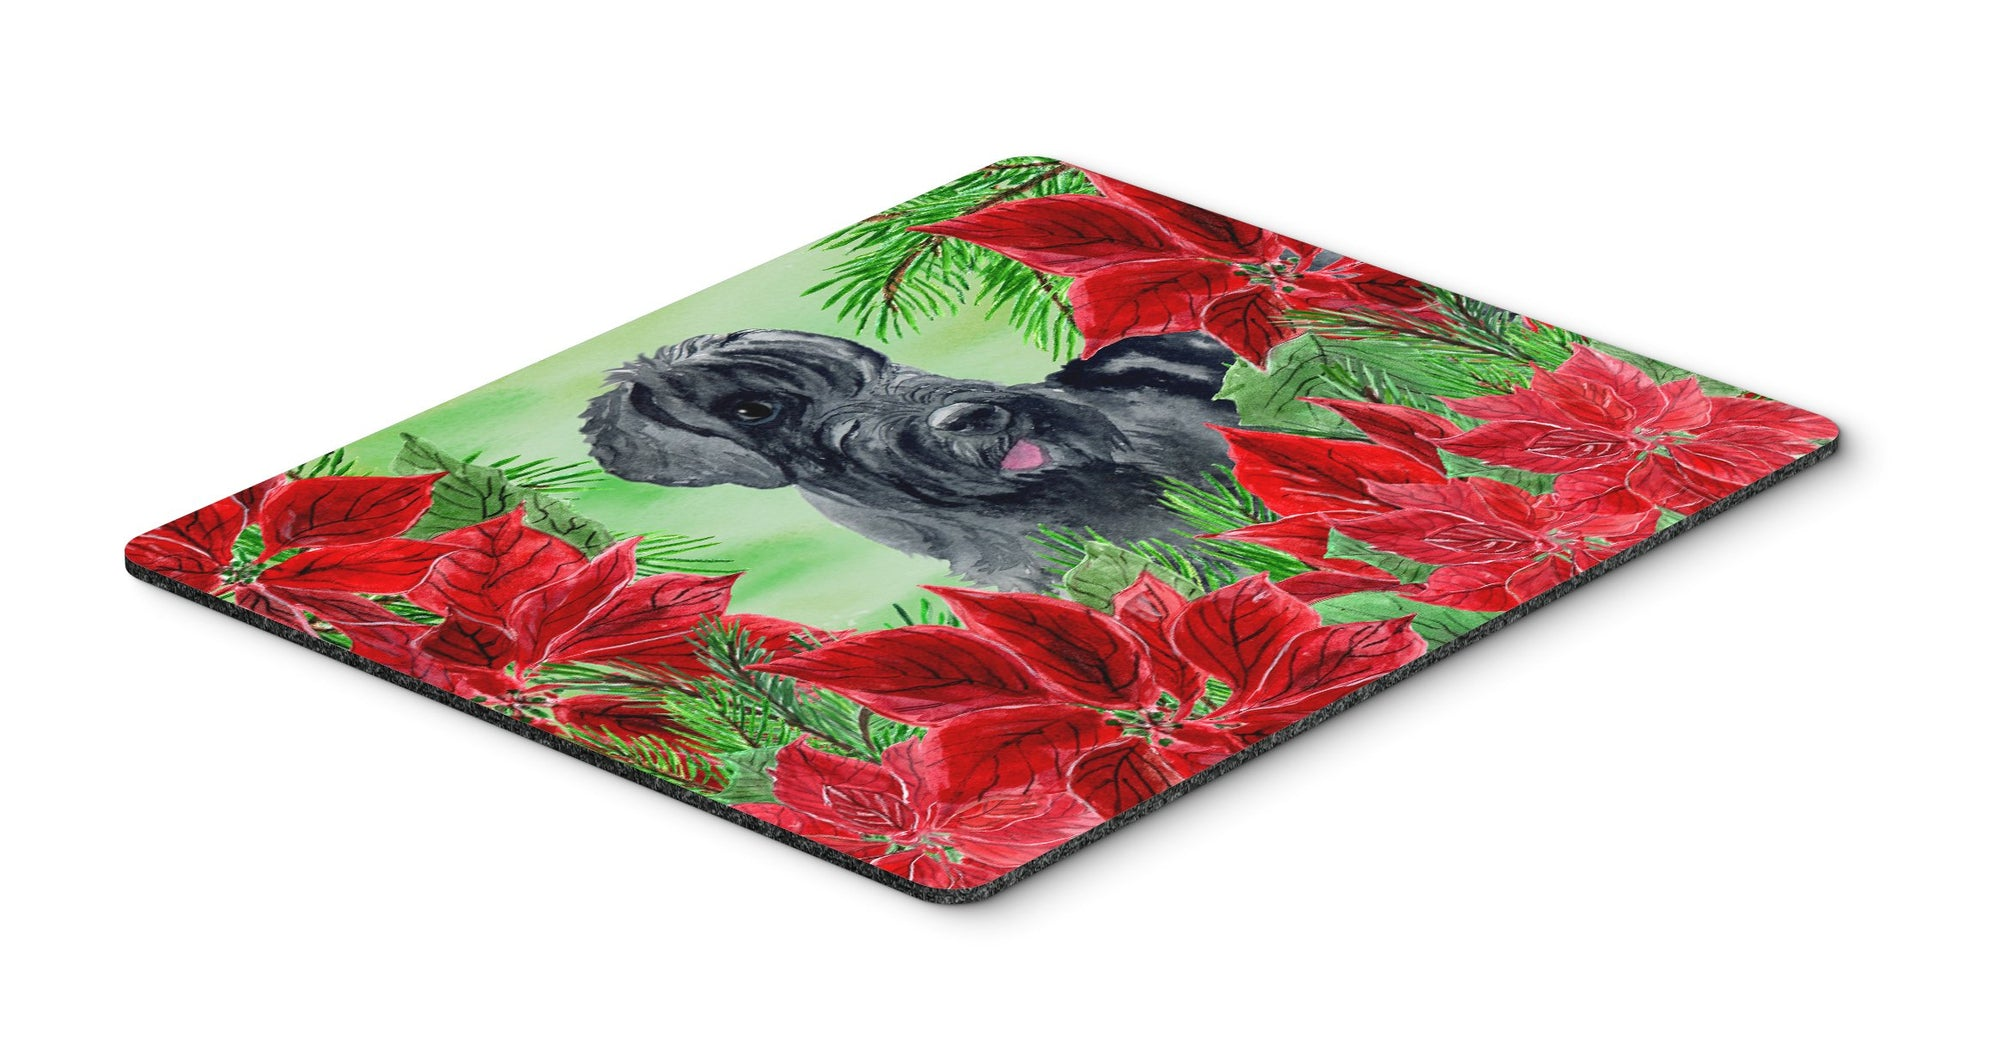 Giant Schnauzer Poinsettas Mouse Pad, Hot Pad or Trivet CK1308MP by Caroline's Treasures